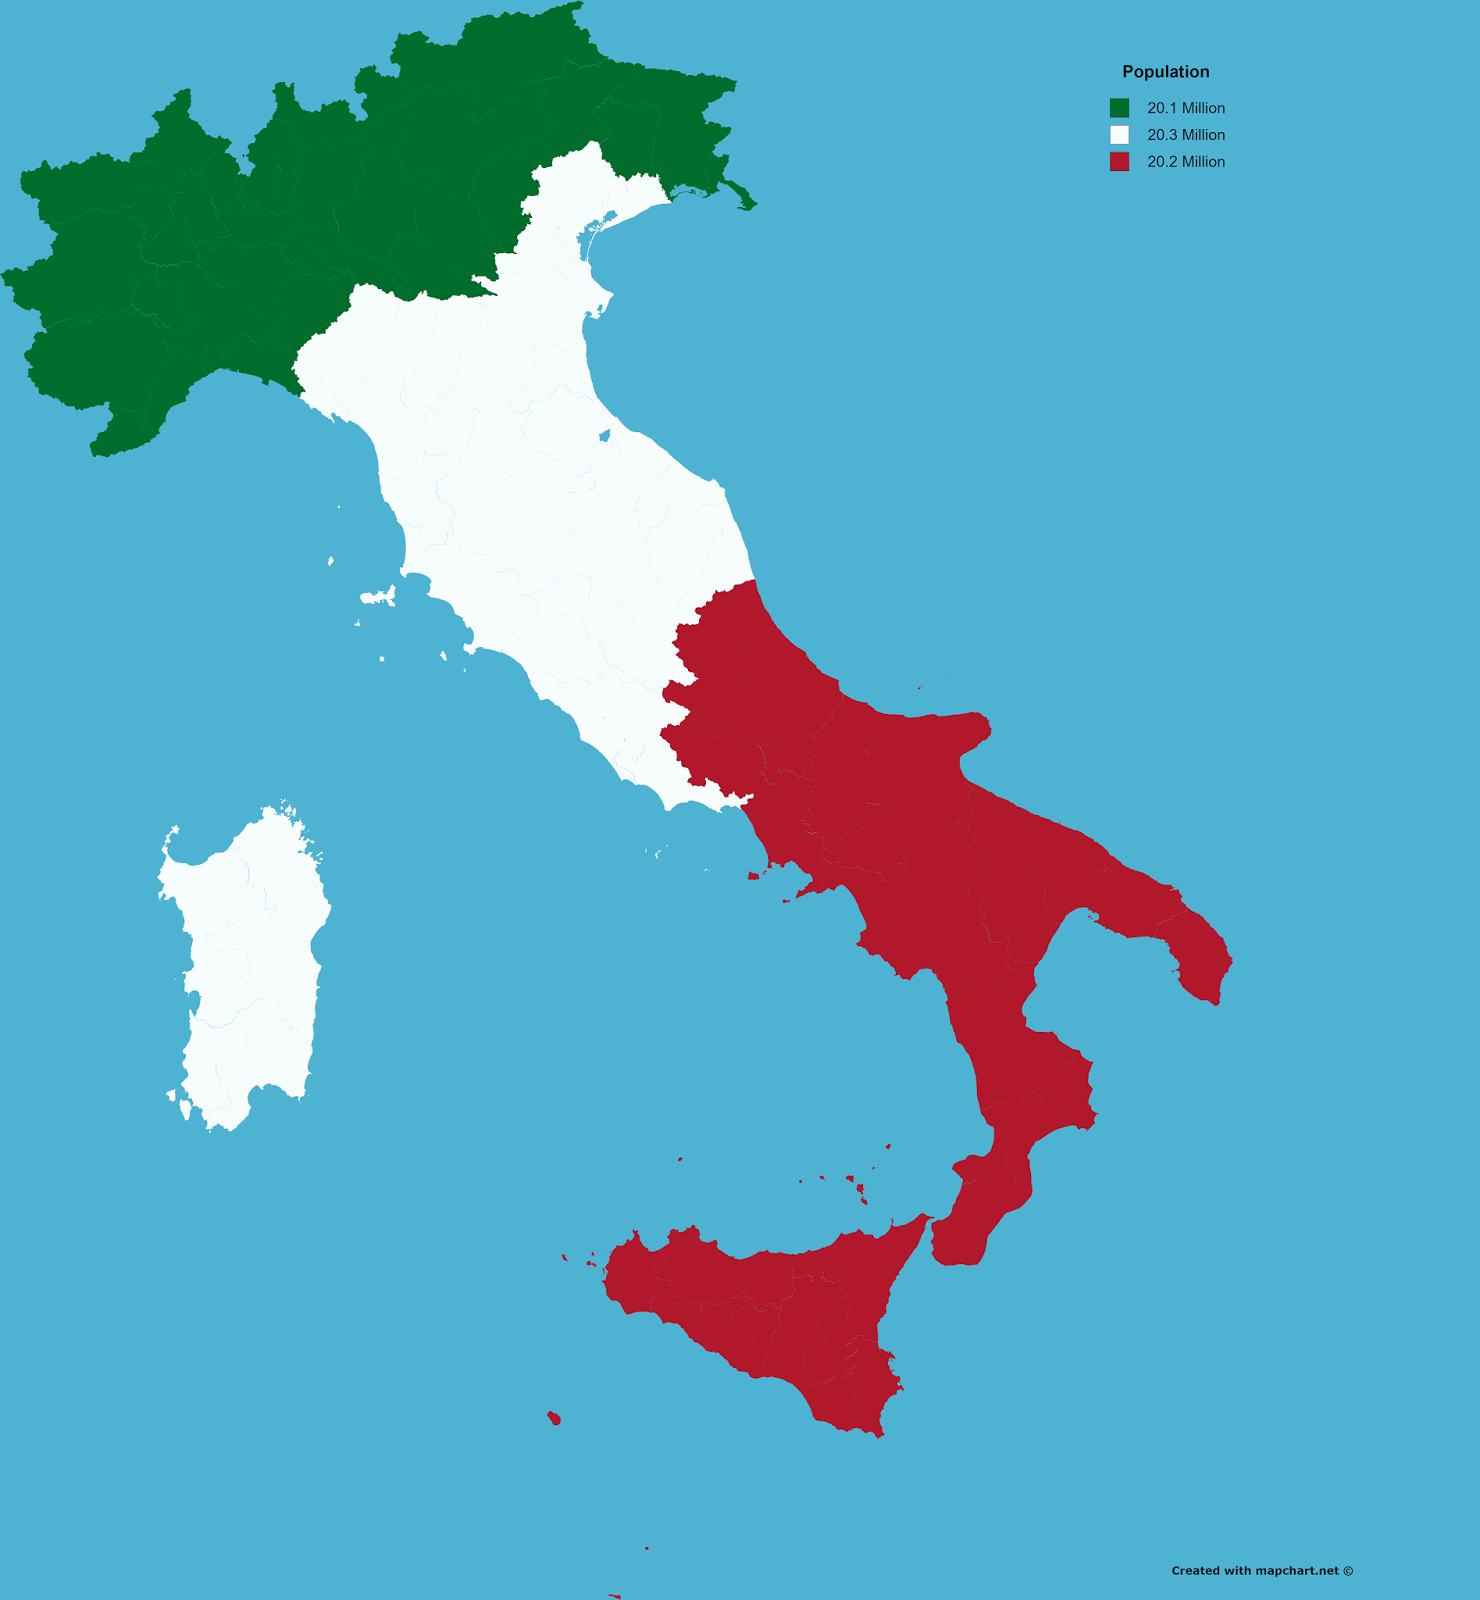 Italy split into 3 areas of equal population